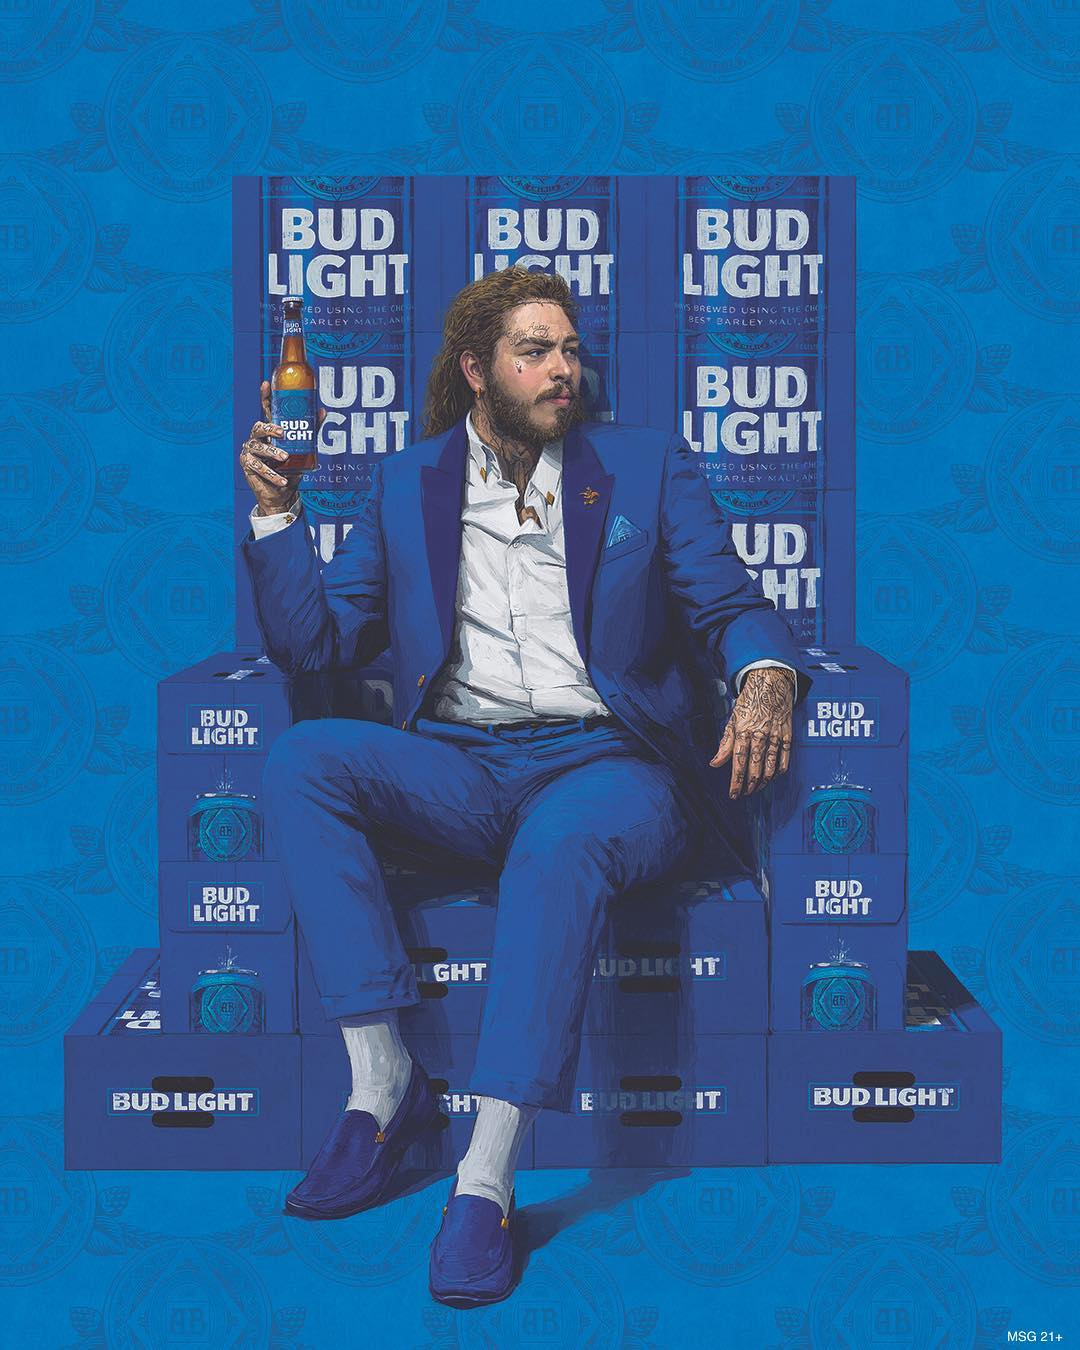 Post Malone's Bud Light ad